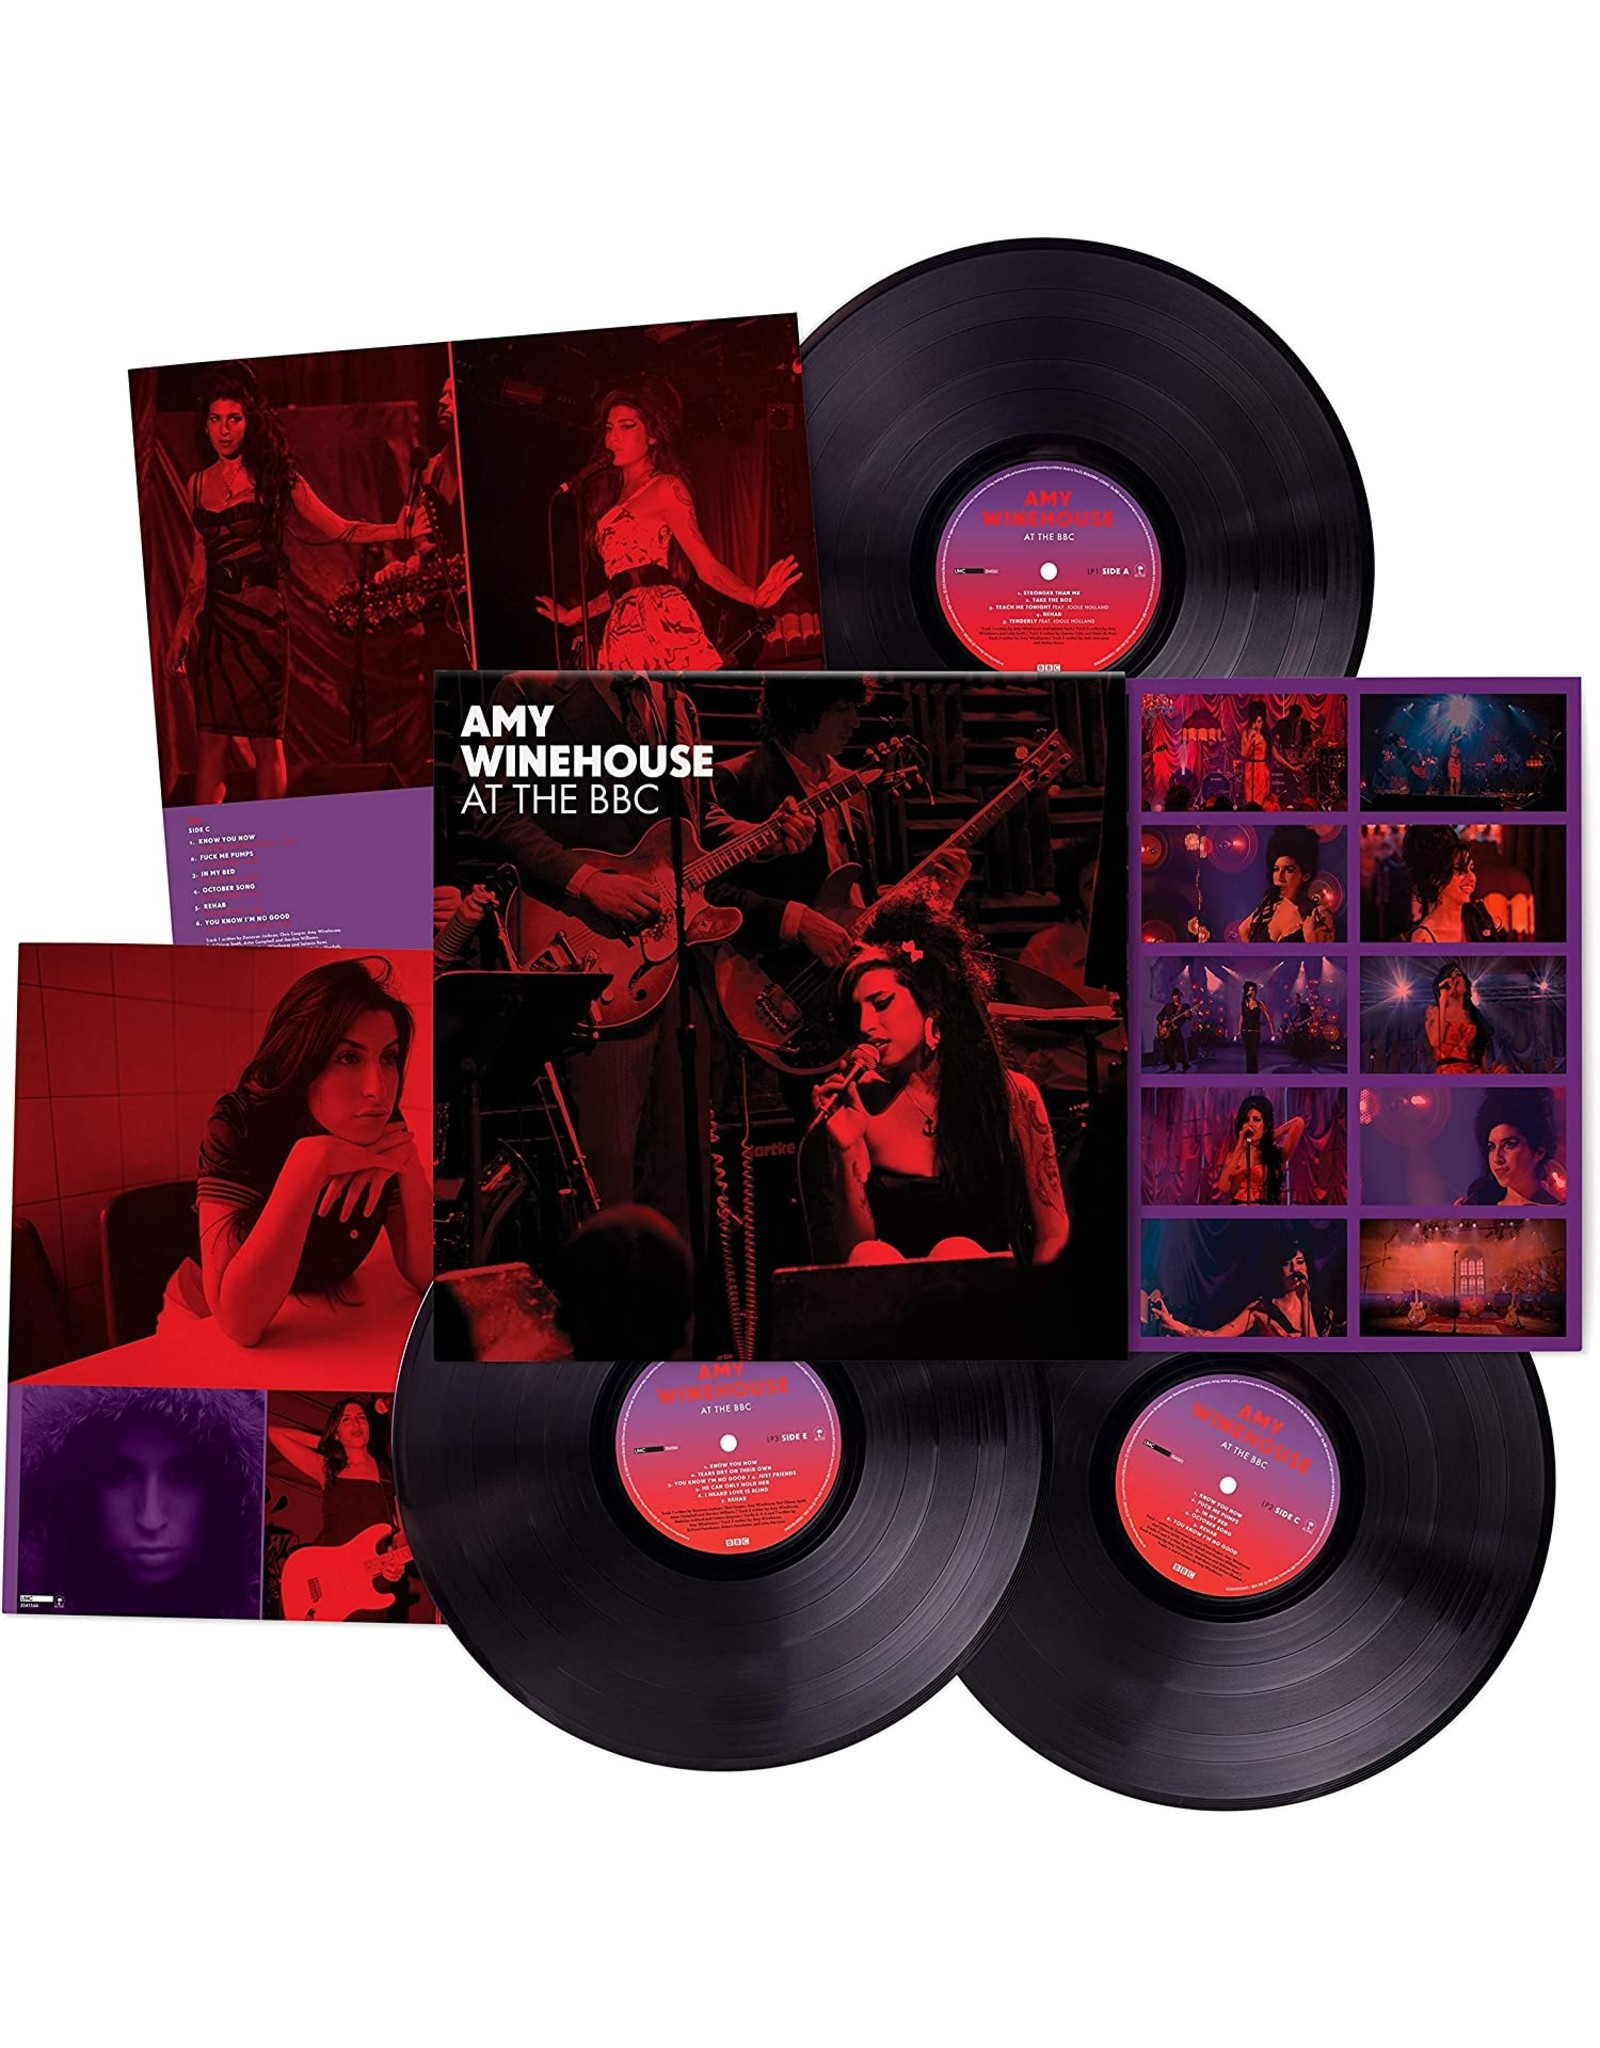 Amy Winehouse - At The BBC (3LP)